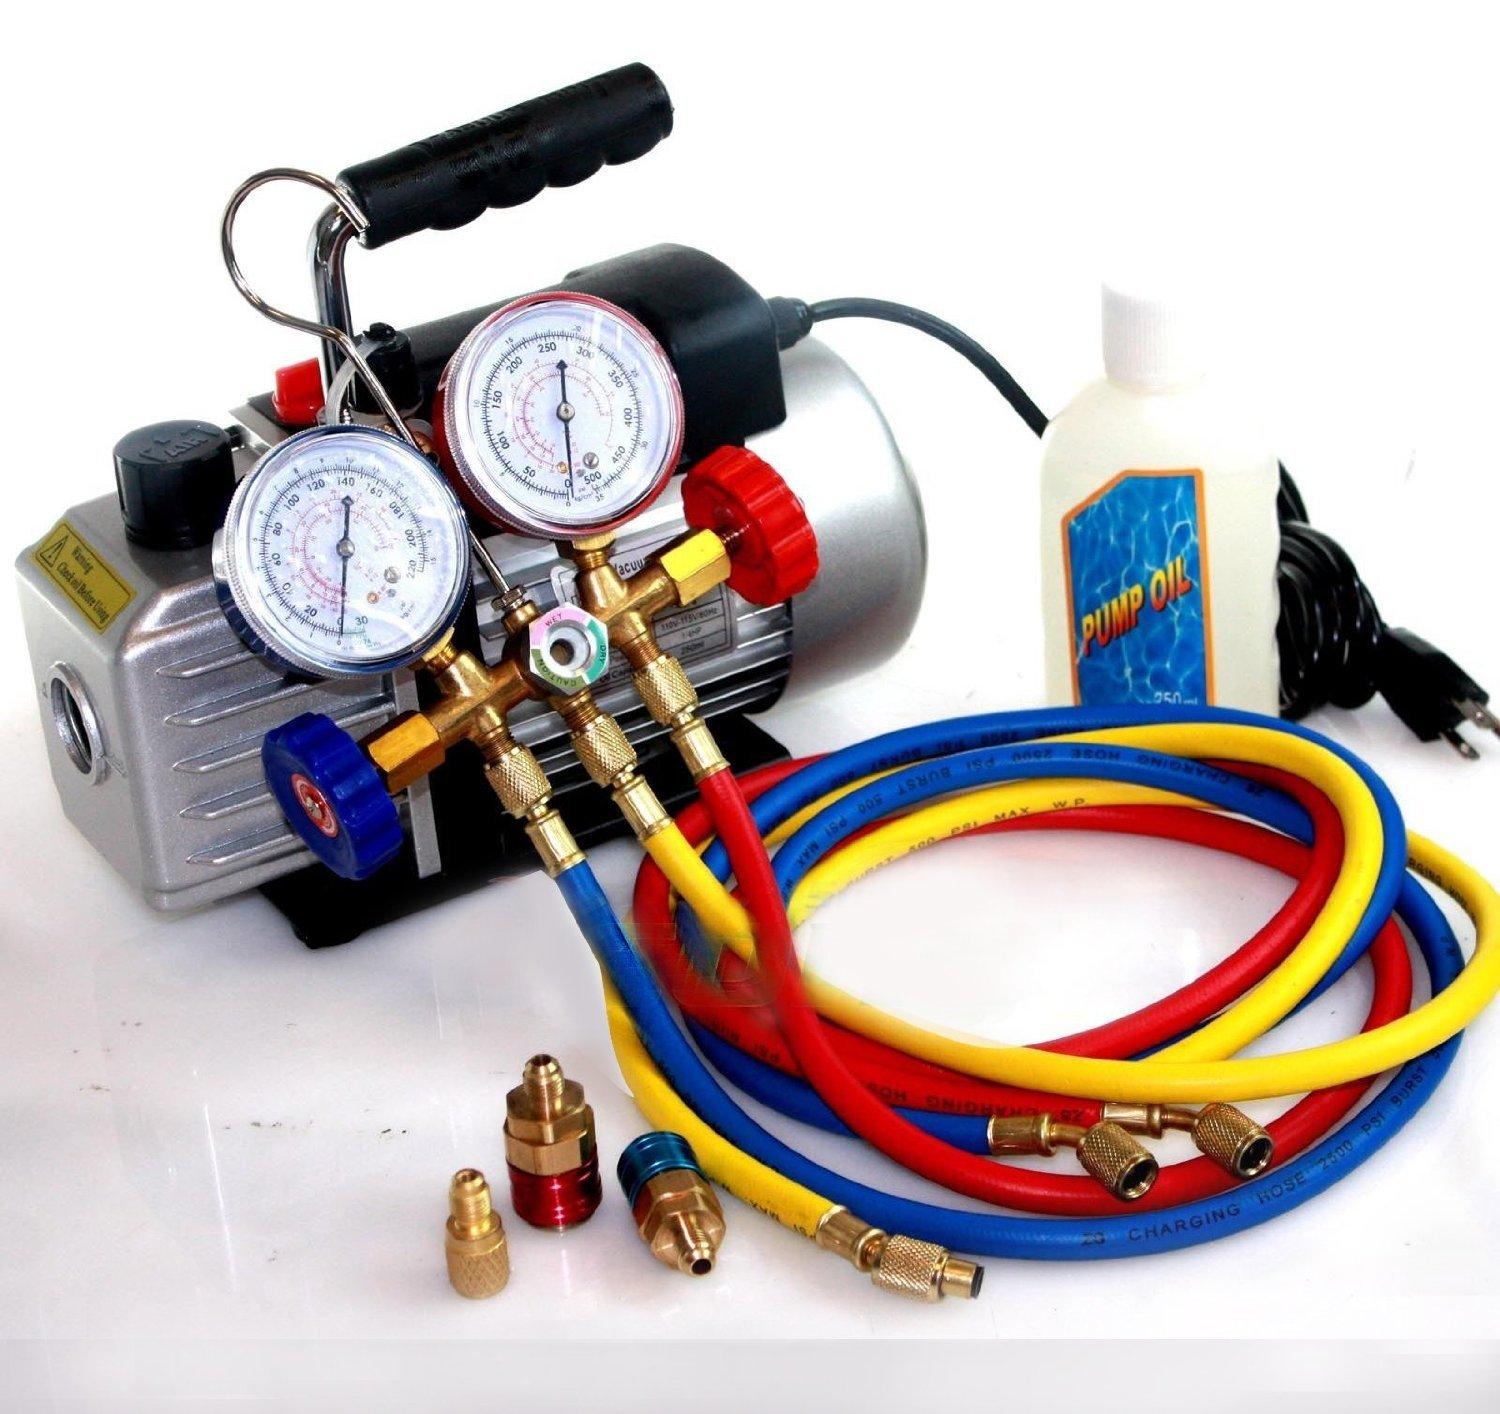 Deluxe R134a R12 R22 R502 Manifold Gauge Set & 2 5CFM Vacuum Pump 5ft HVAC  Hoses by I_S IMPORT